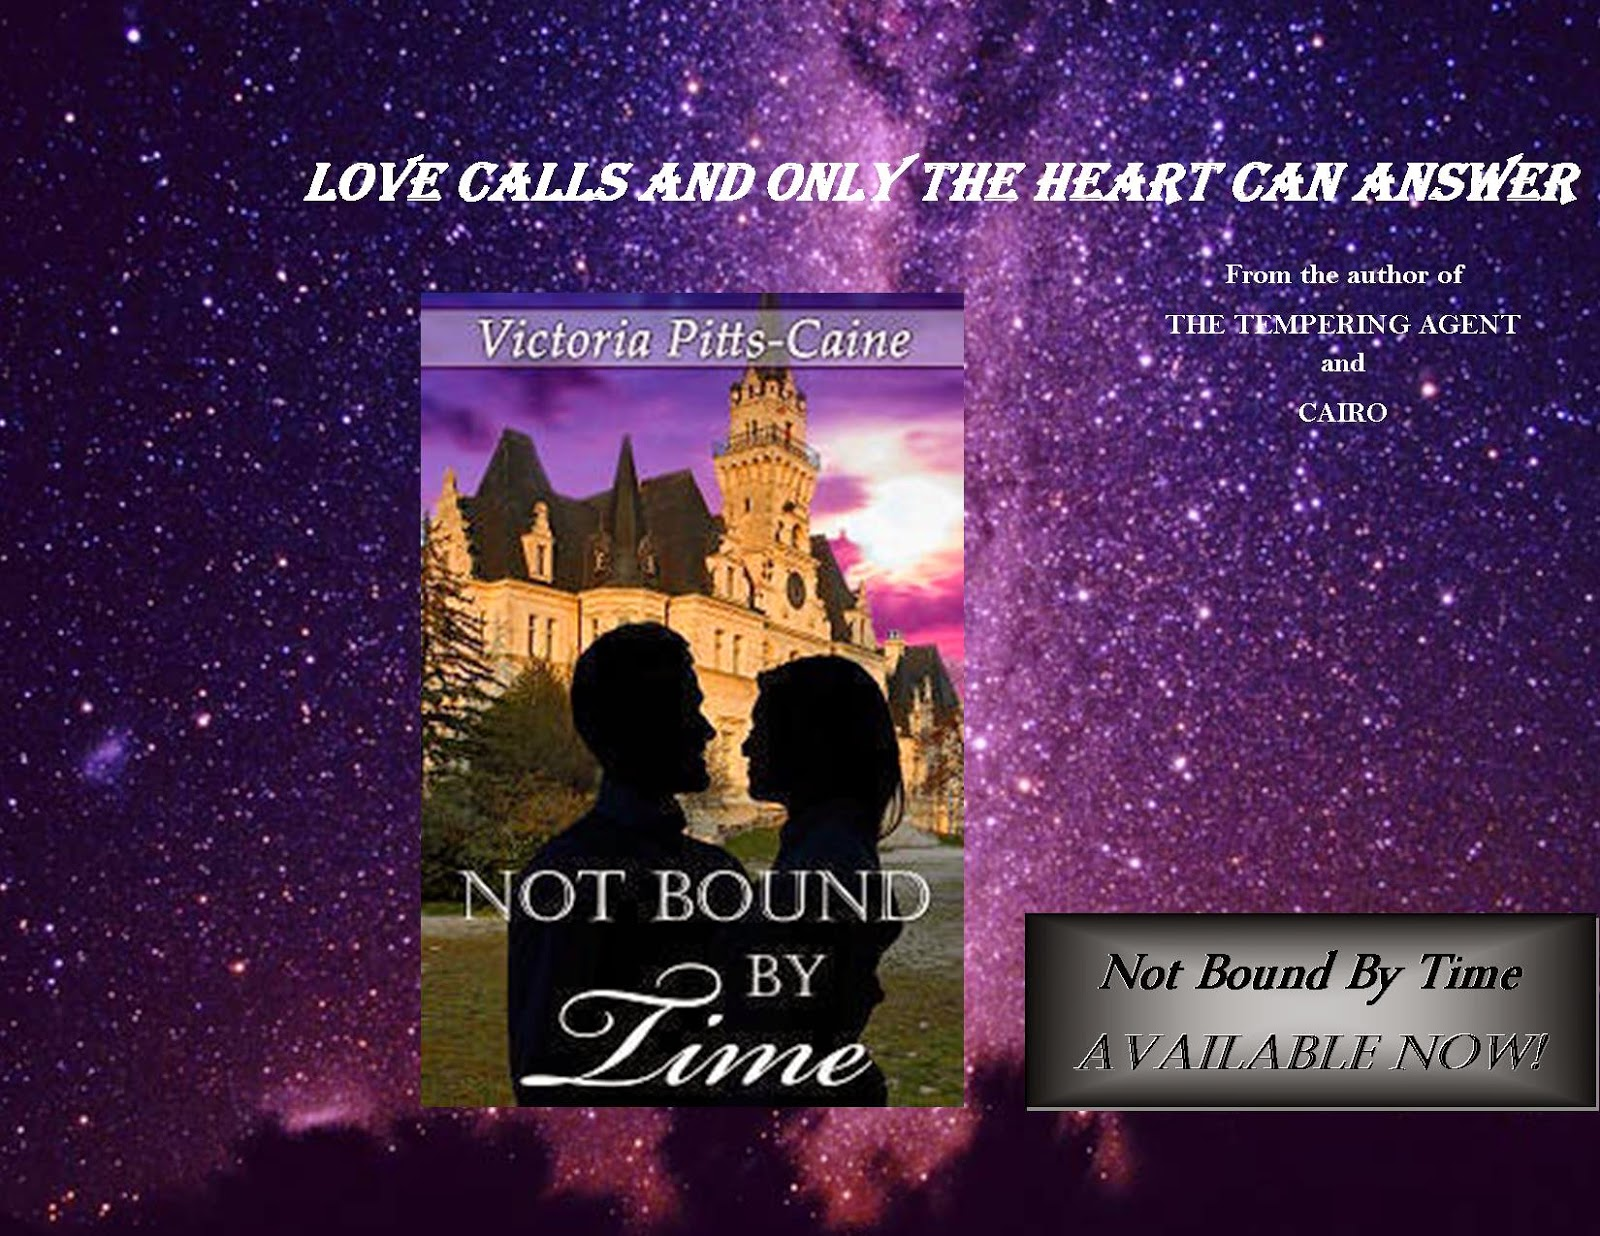 http://www.amazon.com/Not-Bound-Time-Victoria-Pitts-Caine-ebook/dp/B00SEHW3F6/ref=sr_1_1?ie=UTF8&qid=1426694181&sr=8-1&keywords=victoria+pitts+caine